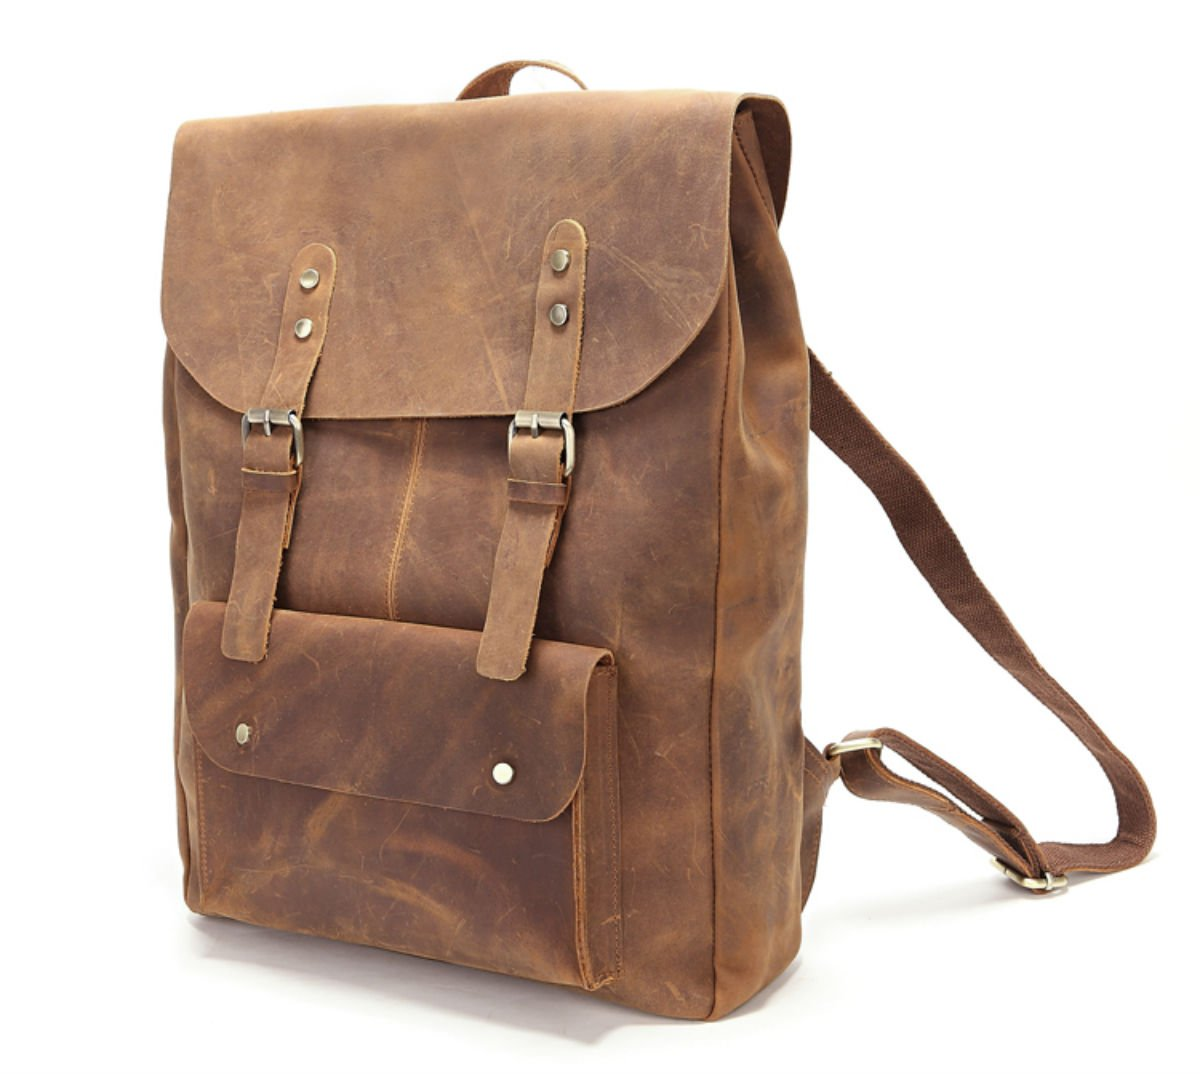 Genuine Leather Real Leather Backpack School Bag Knapsack for Camping by Loyofun